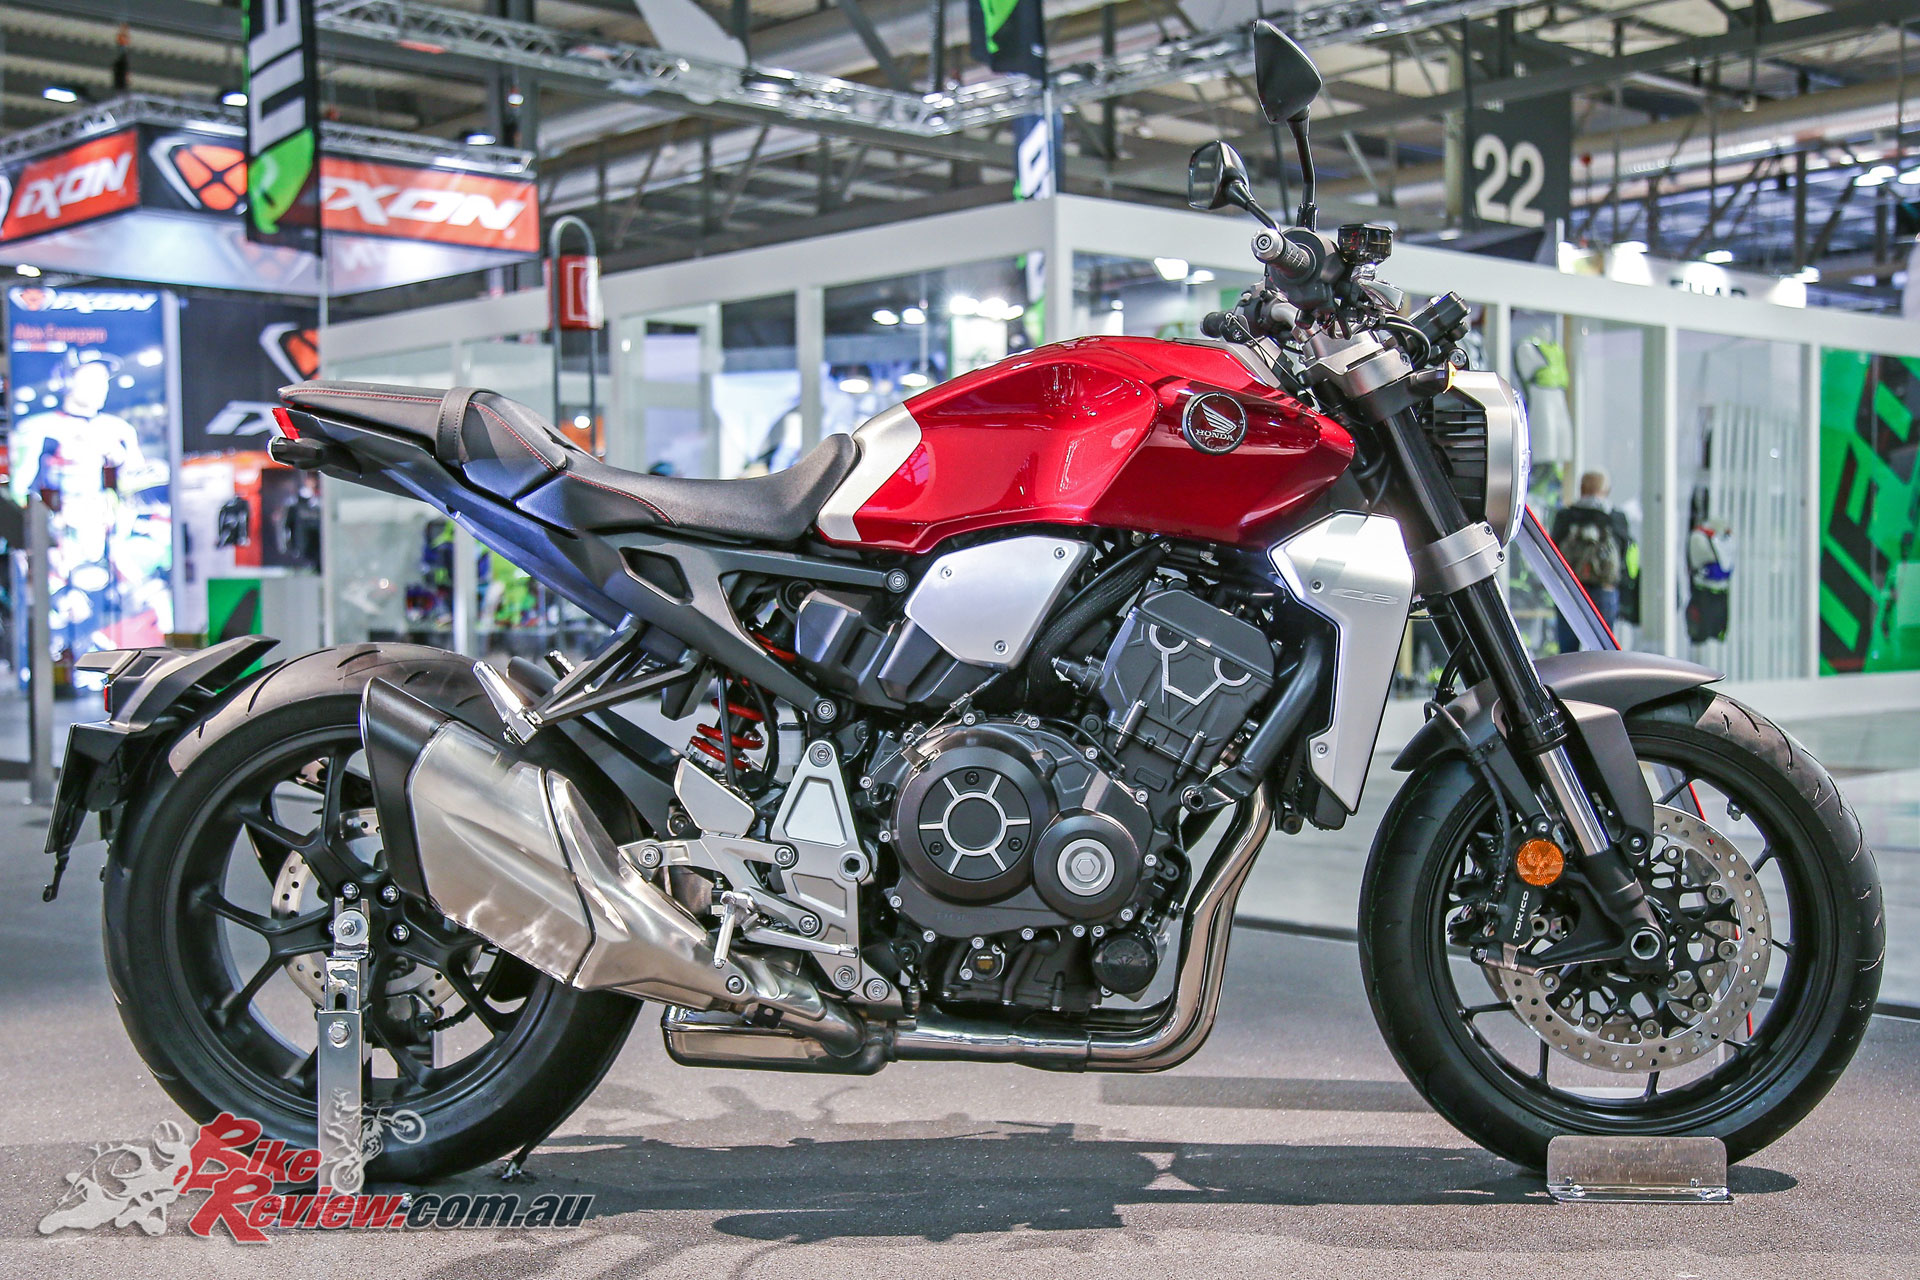 The 2018 Honda CB1000R